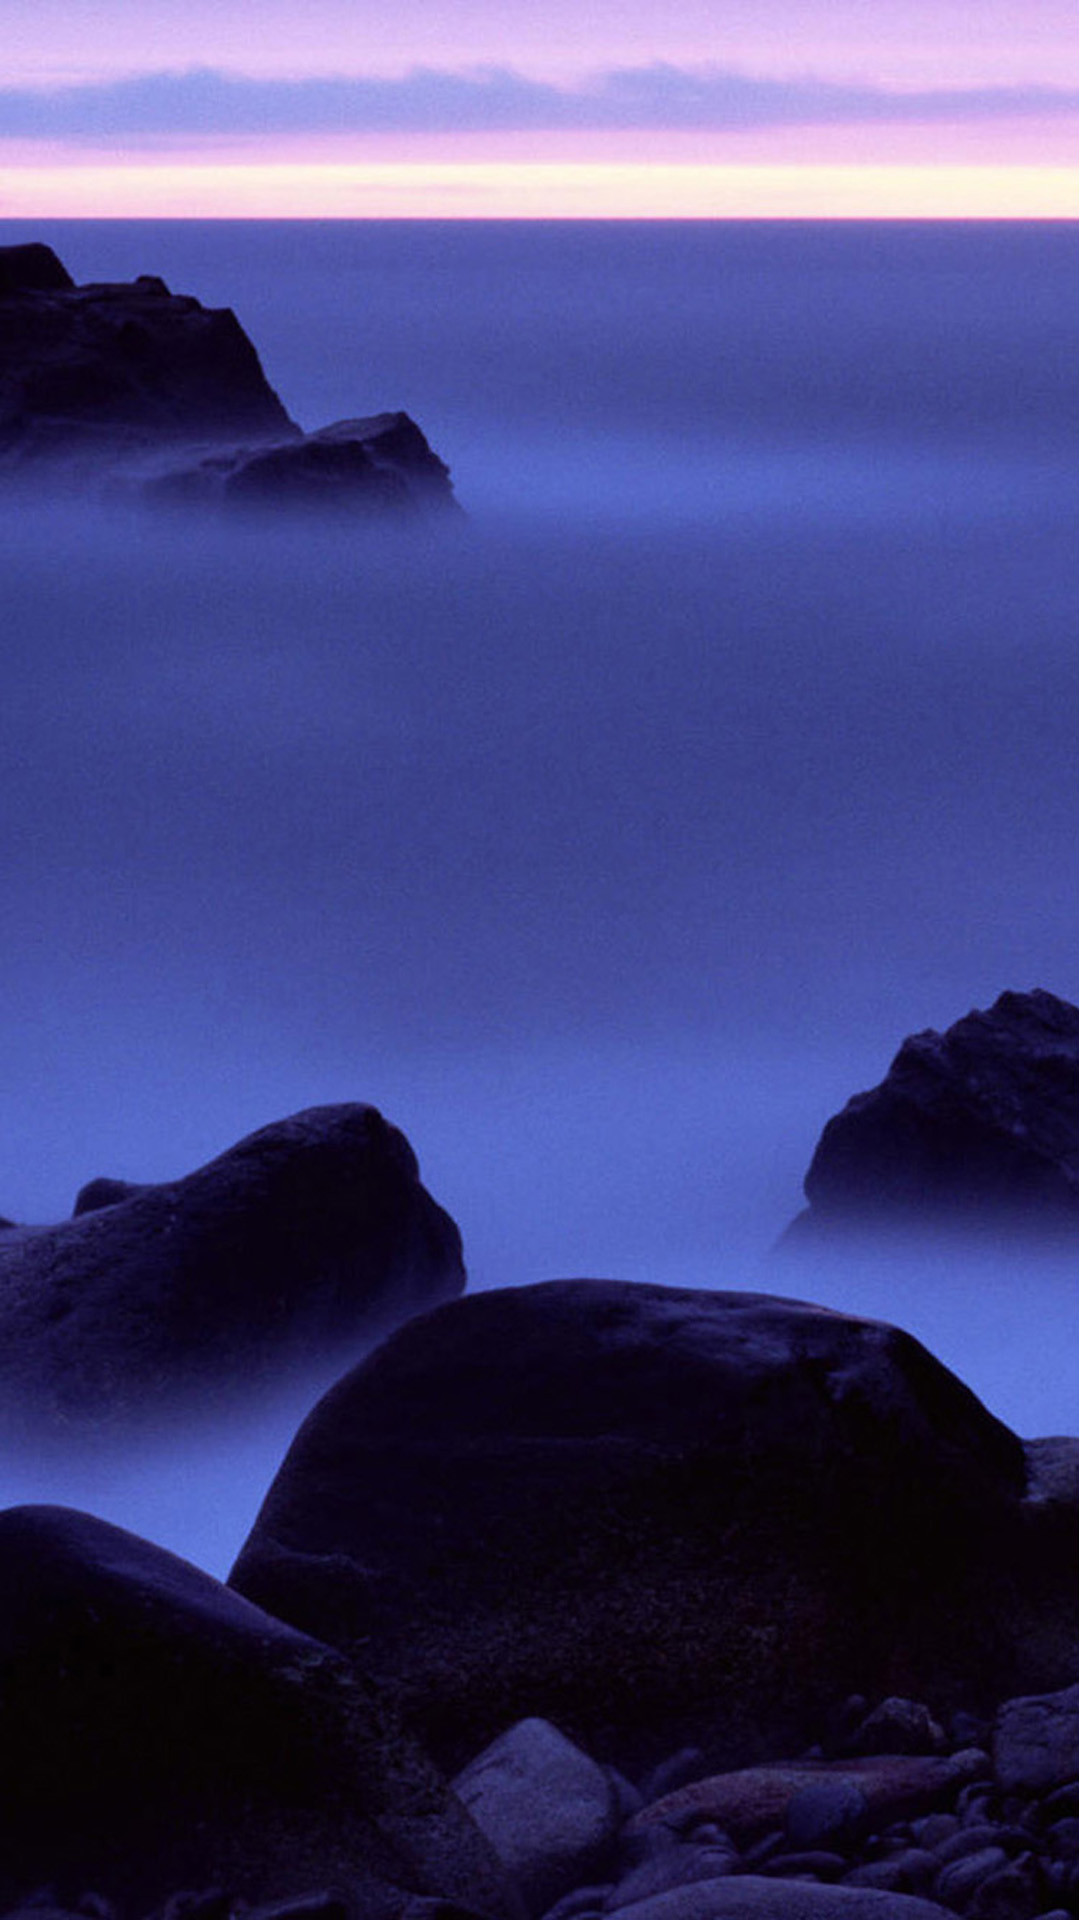 Sea View Background iPhone 6 Wallpaper Download   iPhone Wallpapers .